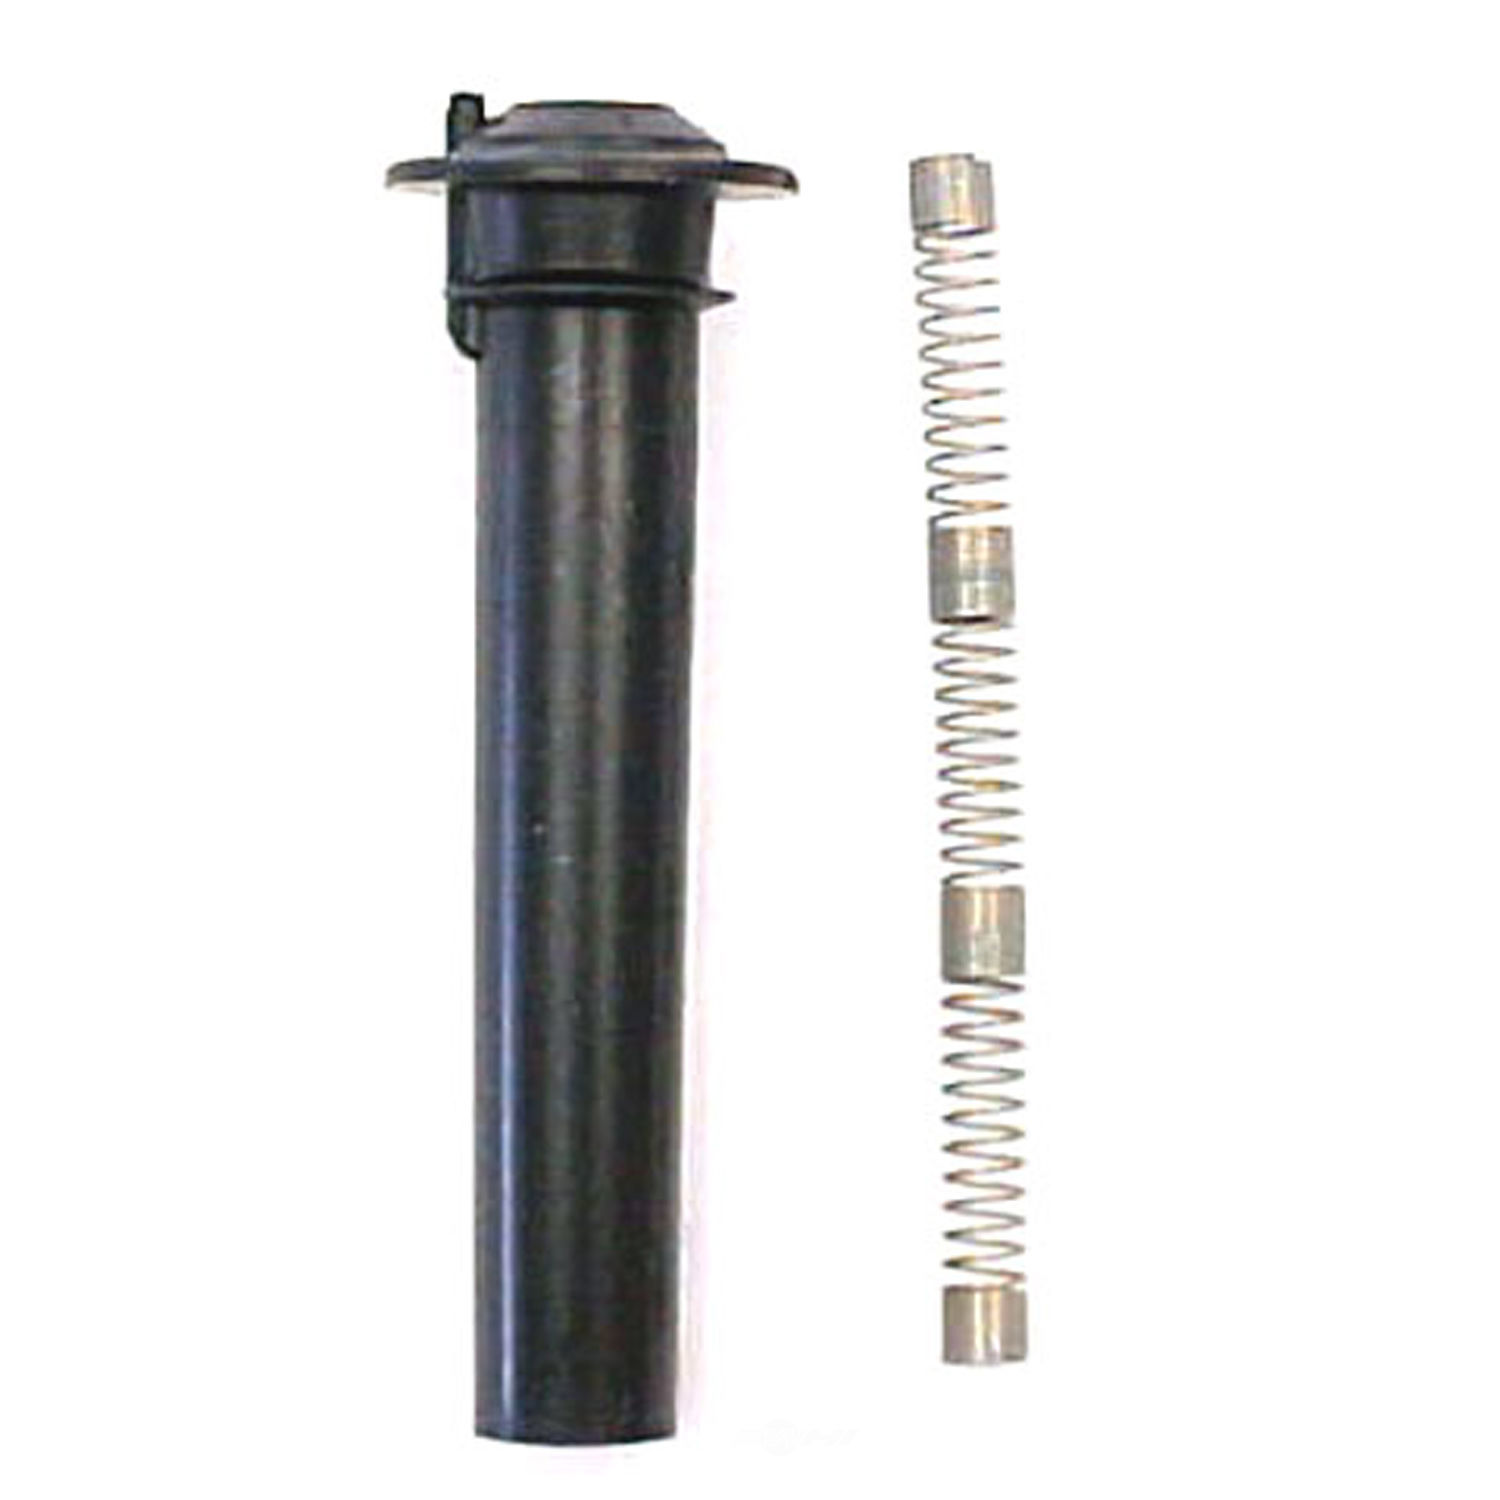 DENSO - Direct Ignition Coil Boot Kit - 6 Boots - NDE 671-6236